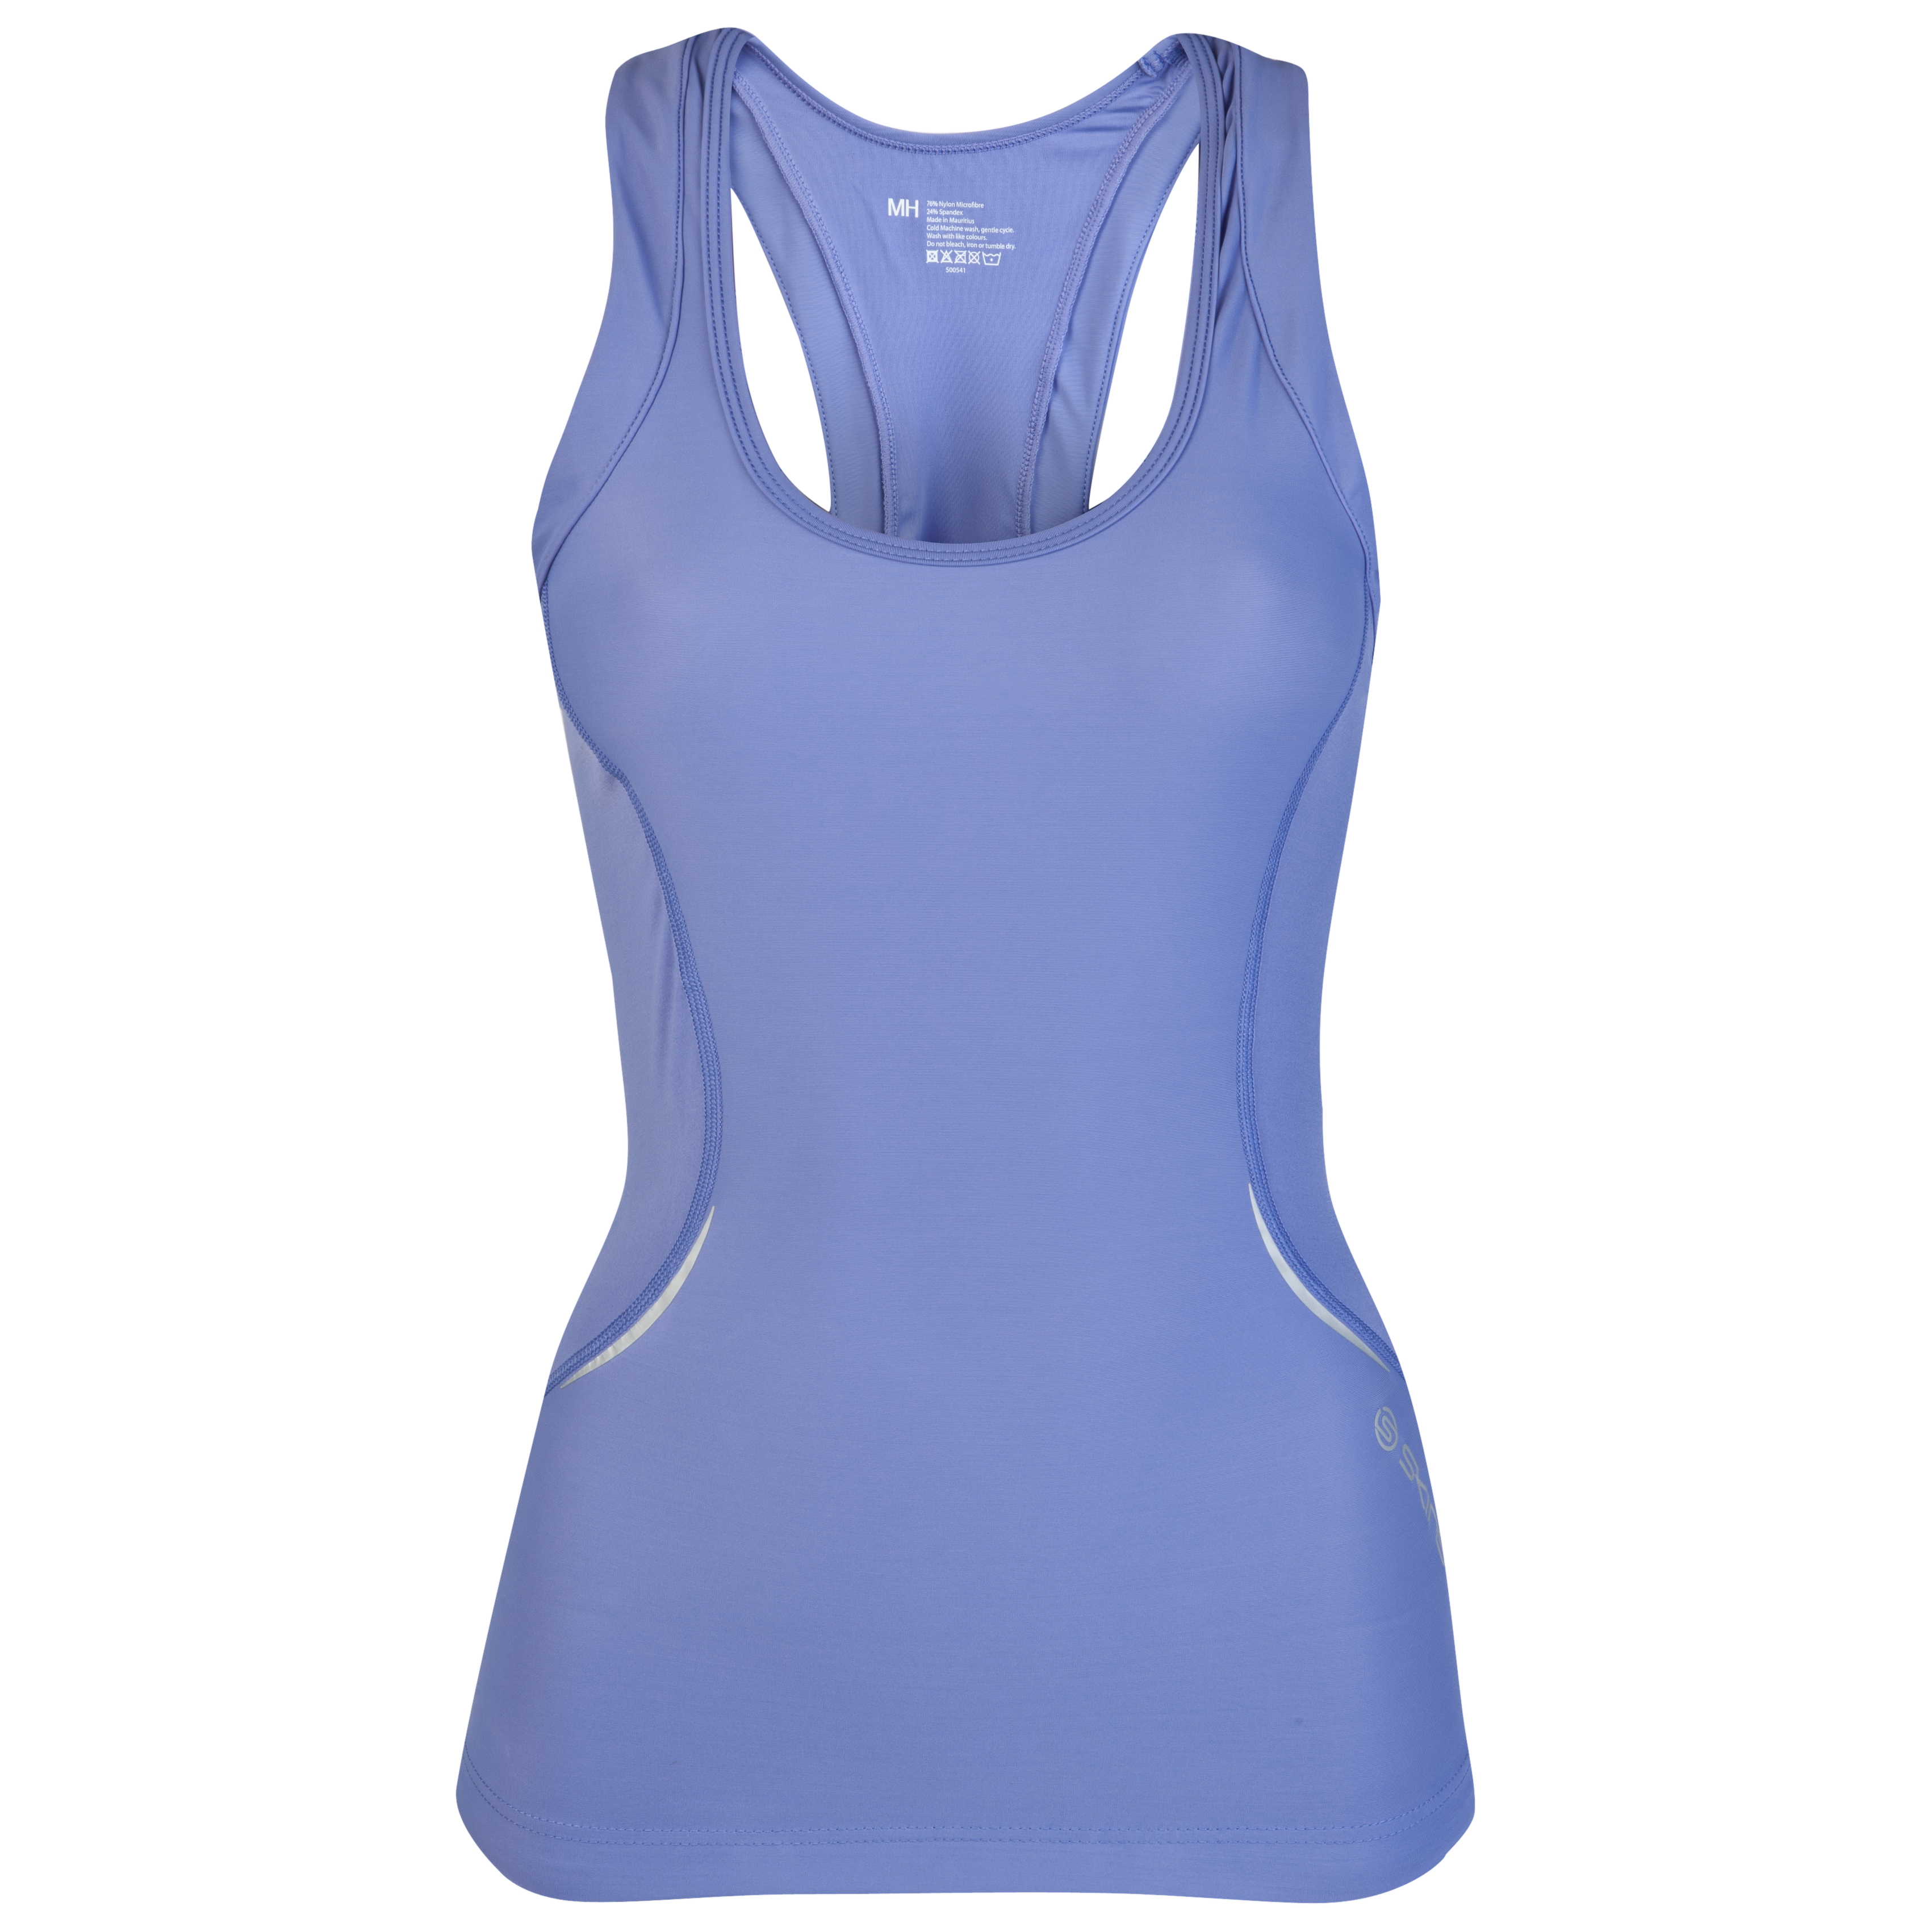 Skins A400 Active Racer Back Top - Amethyst - Womens